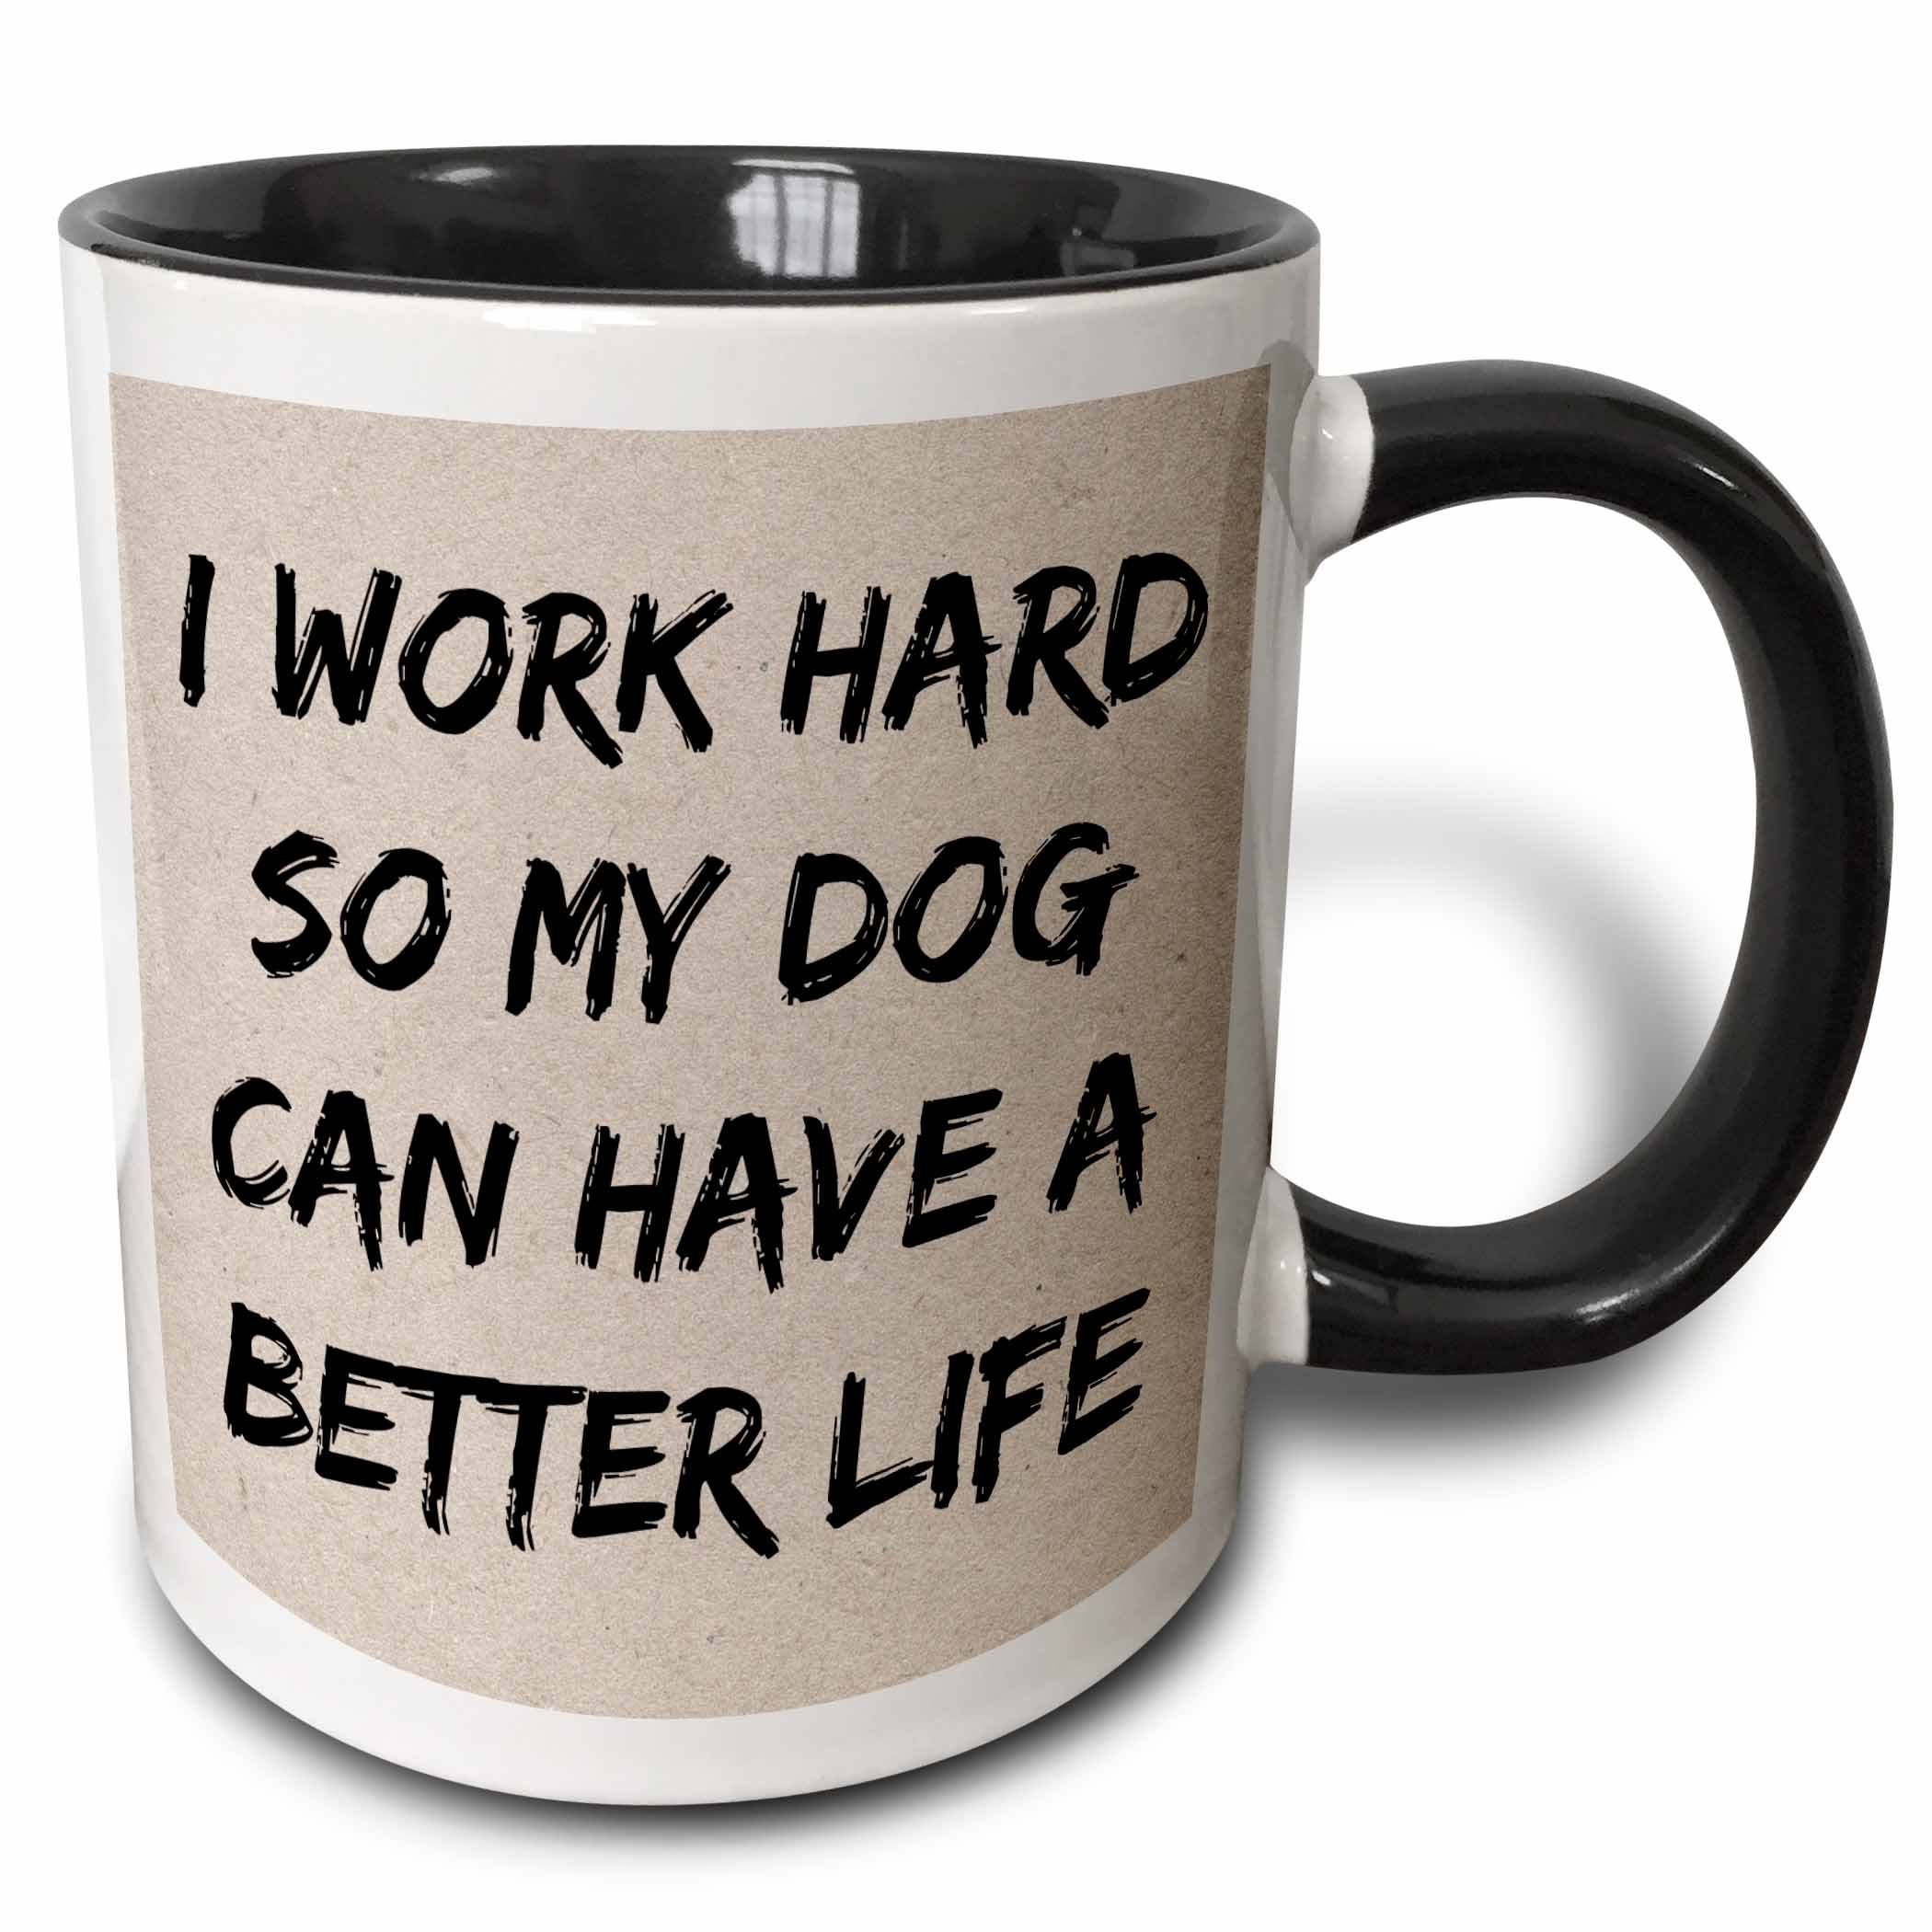 3dRose I Work Hard So My Dog Can Have A Better Life, Black Letters, Two Tone Black Mug, 11oz by 3dRose